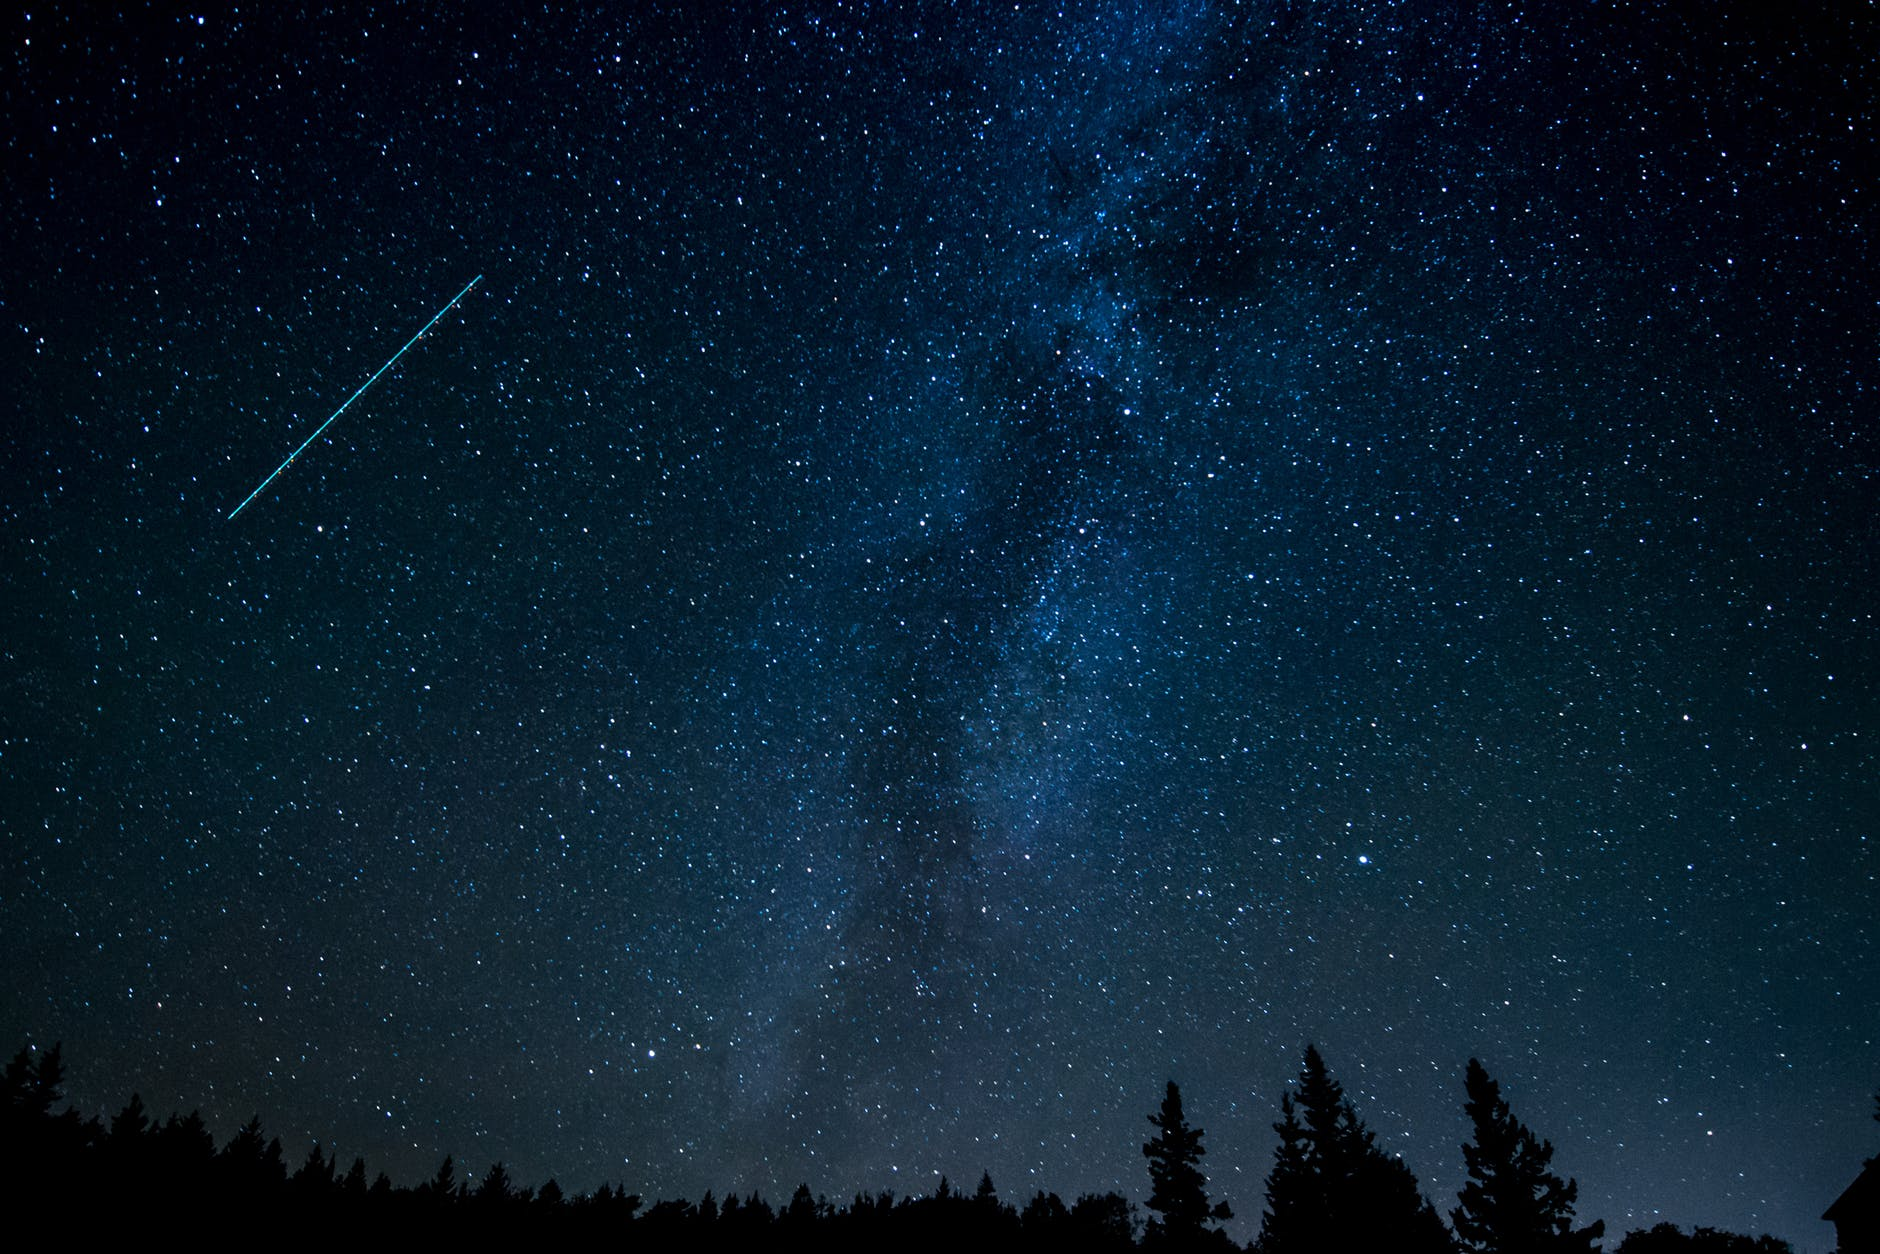 Perseid meteor shower lights up the sky with spectacular displays